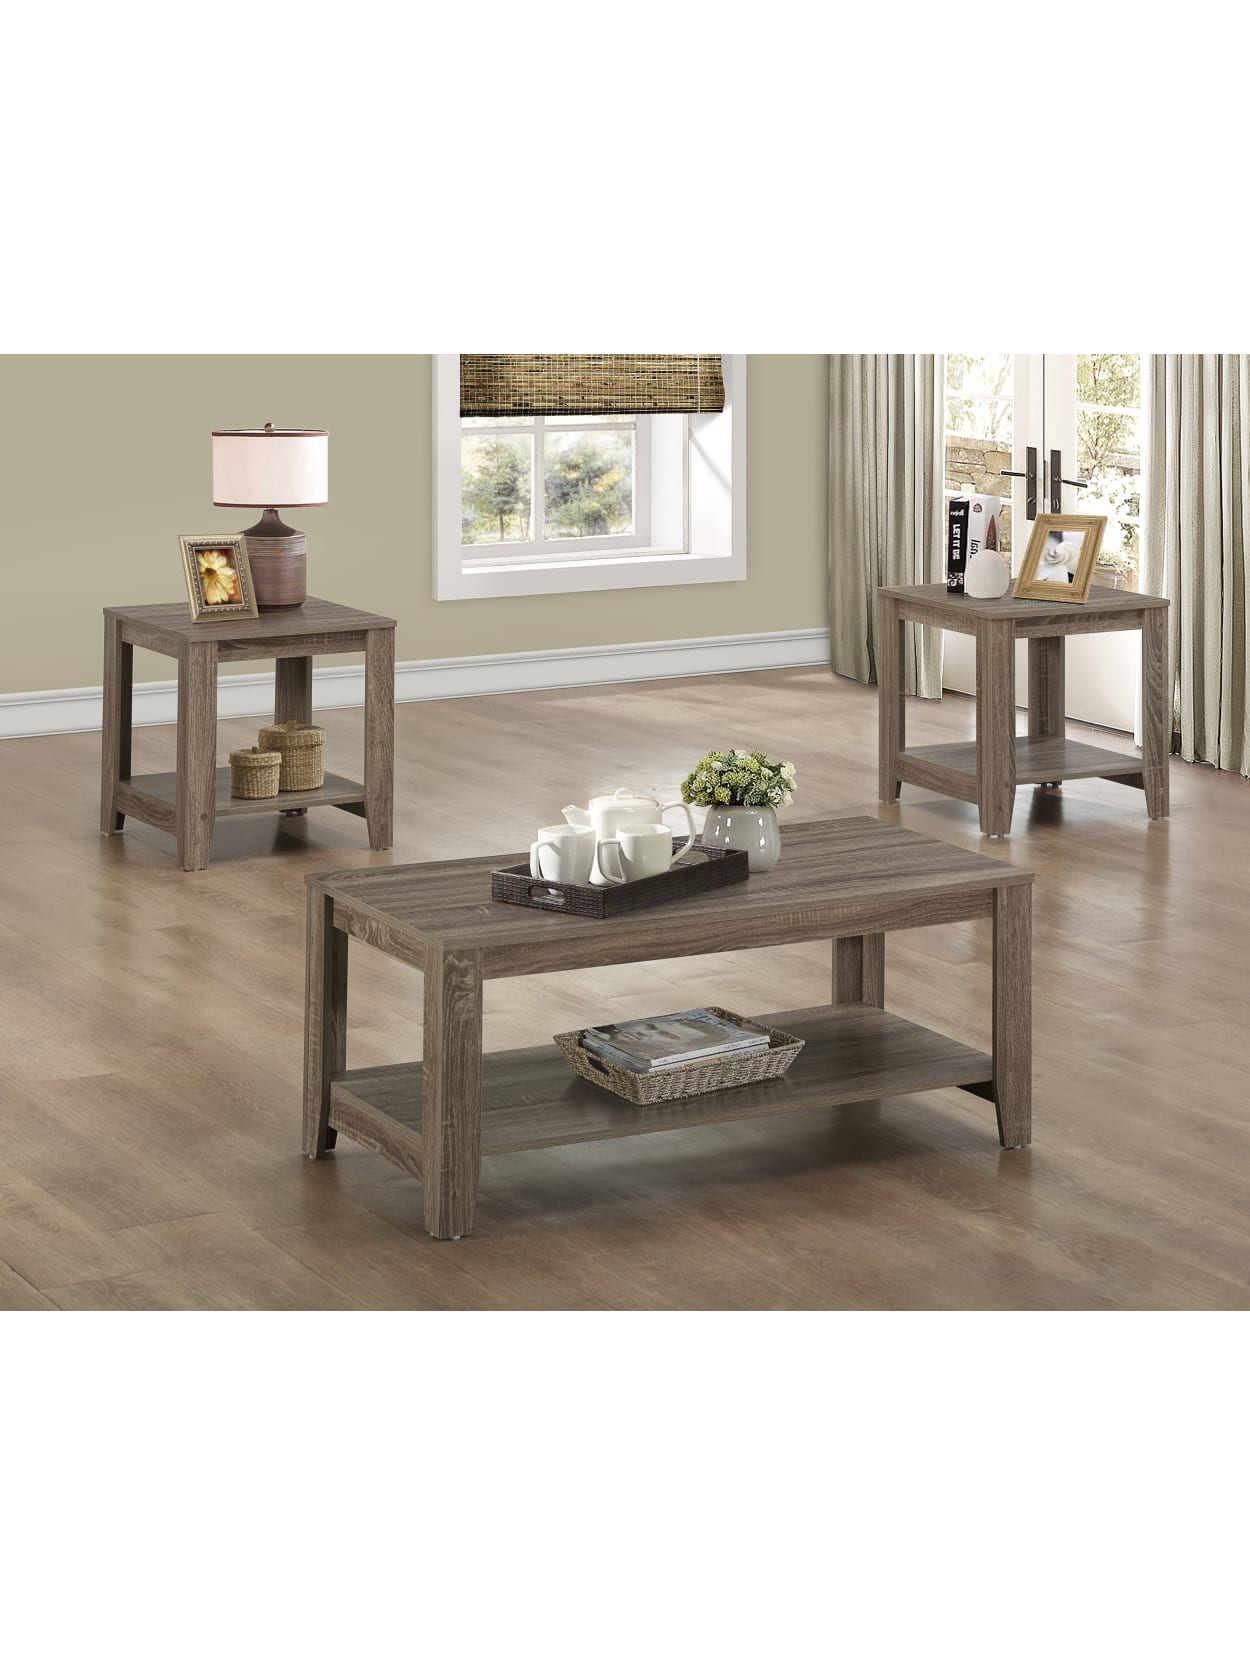 Monarch Specialties 3 Piece Coffee Table Set With Shelves Rectangle Dark Taupe Office Depot